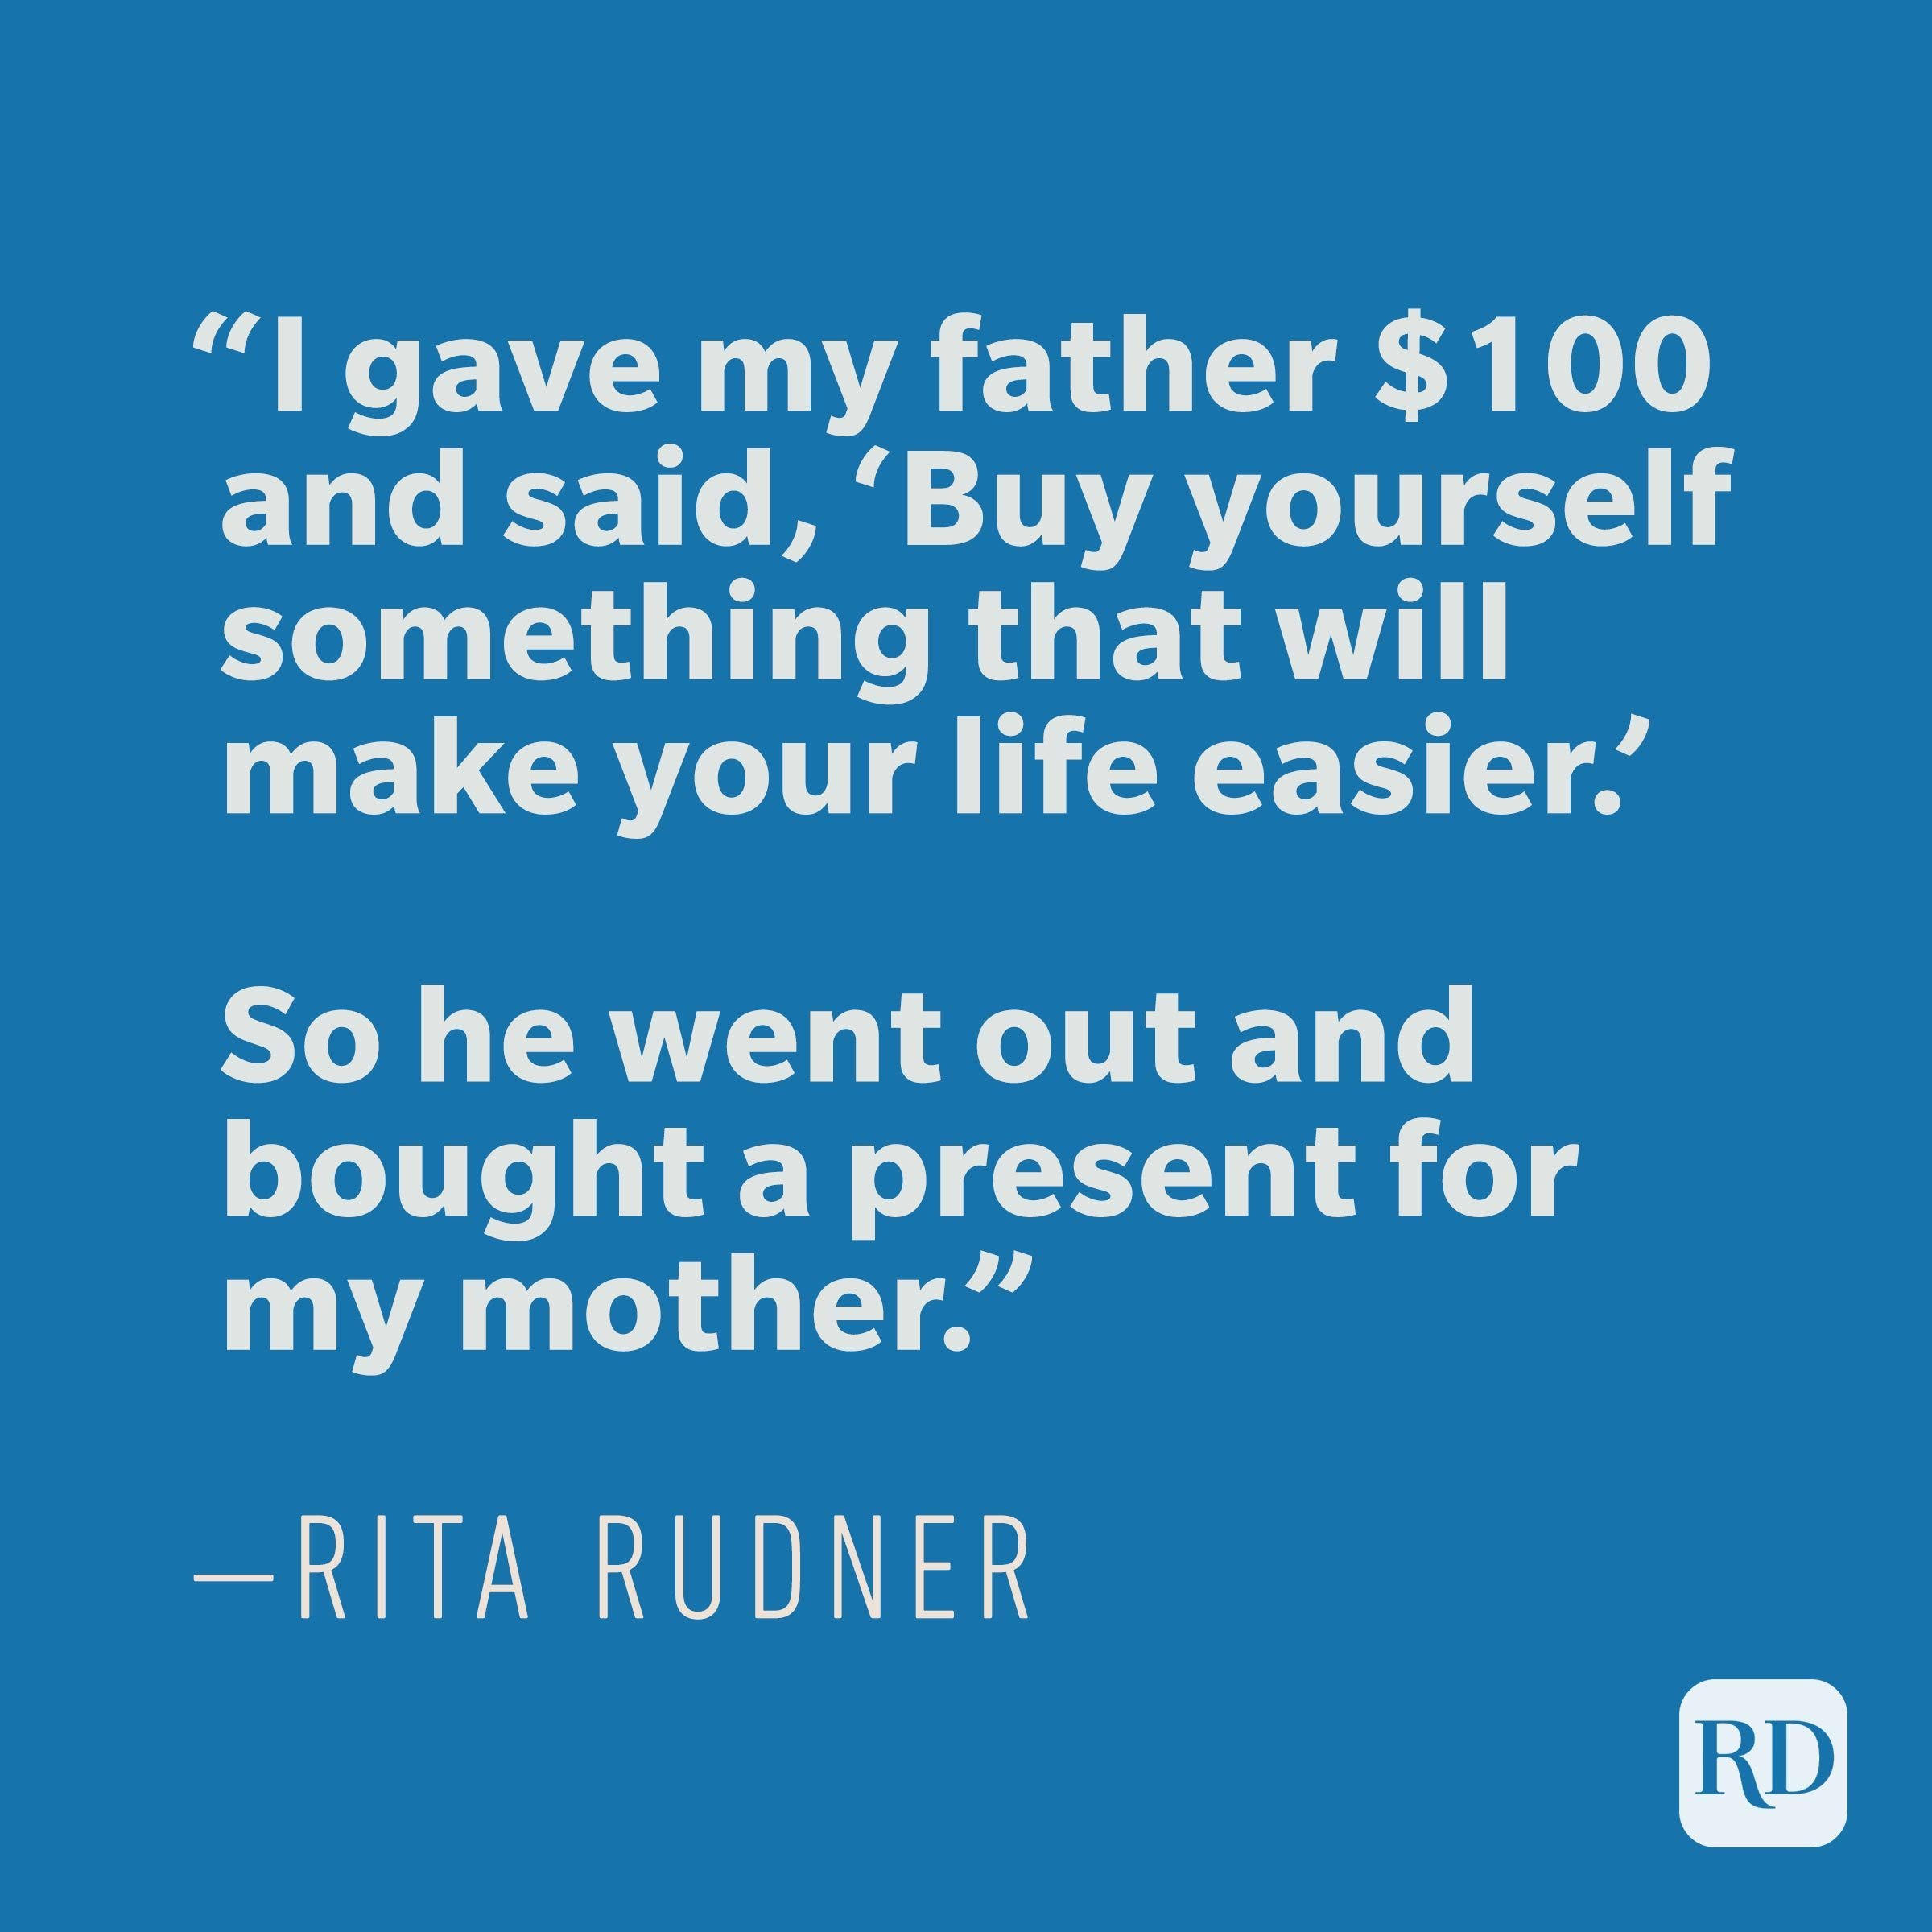 """I gave my father $100 and said, 'Buy yourself something that will make your life easier.' So he went out and bought a present for my mother."" ——RITA RUDNER"